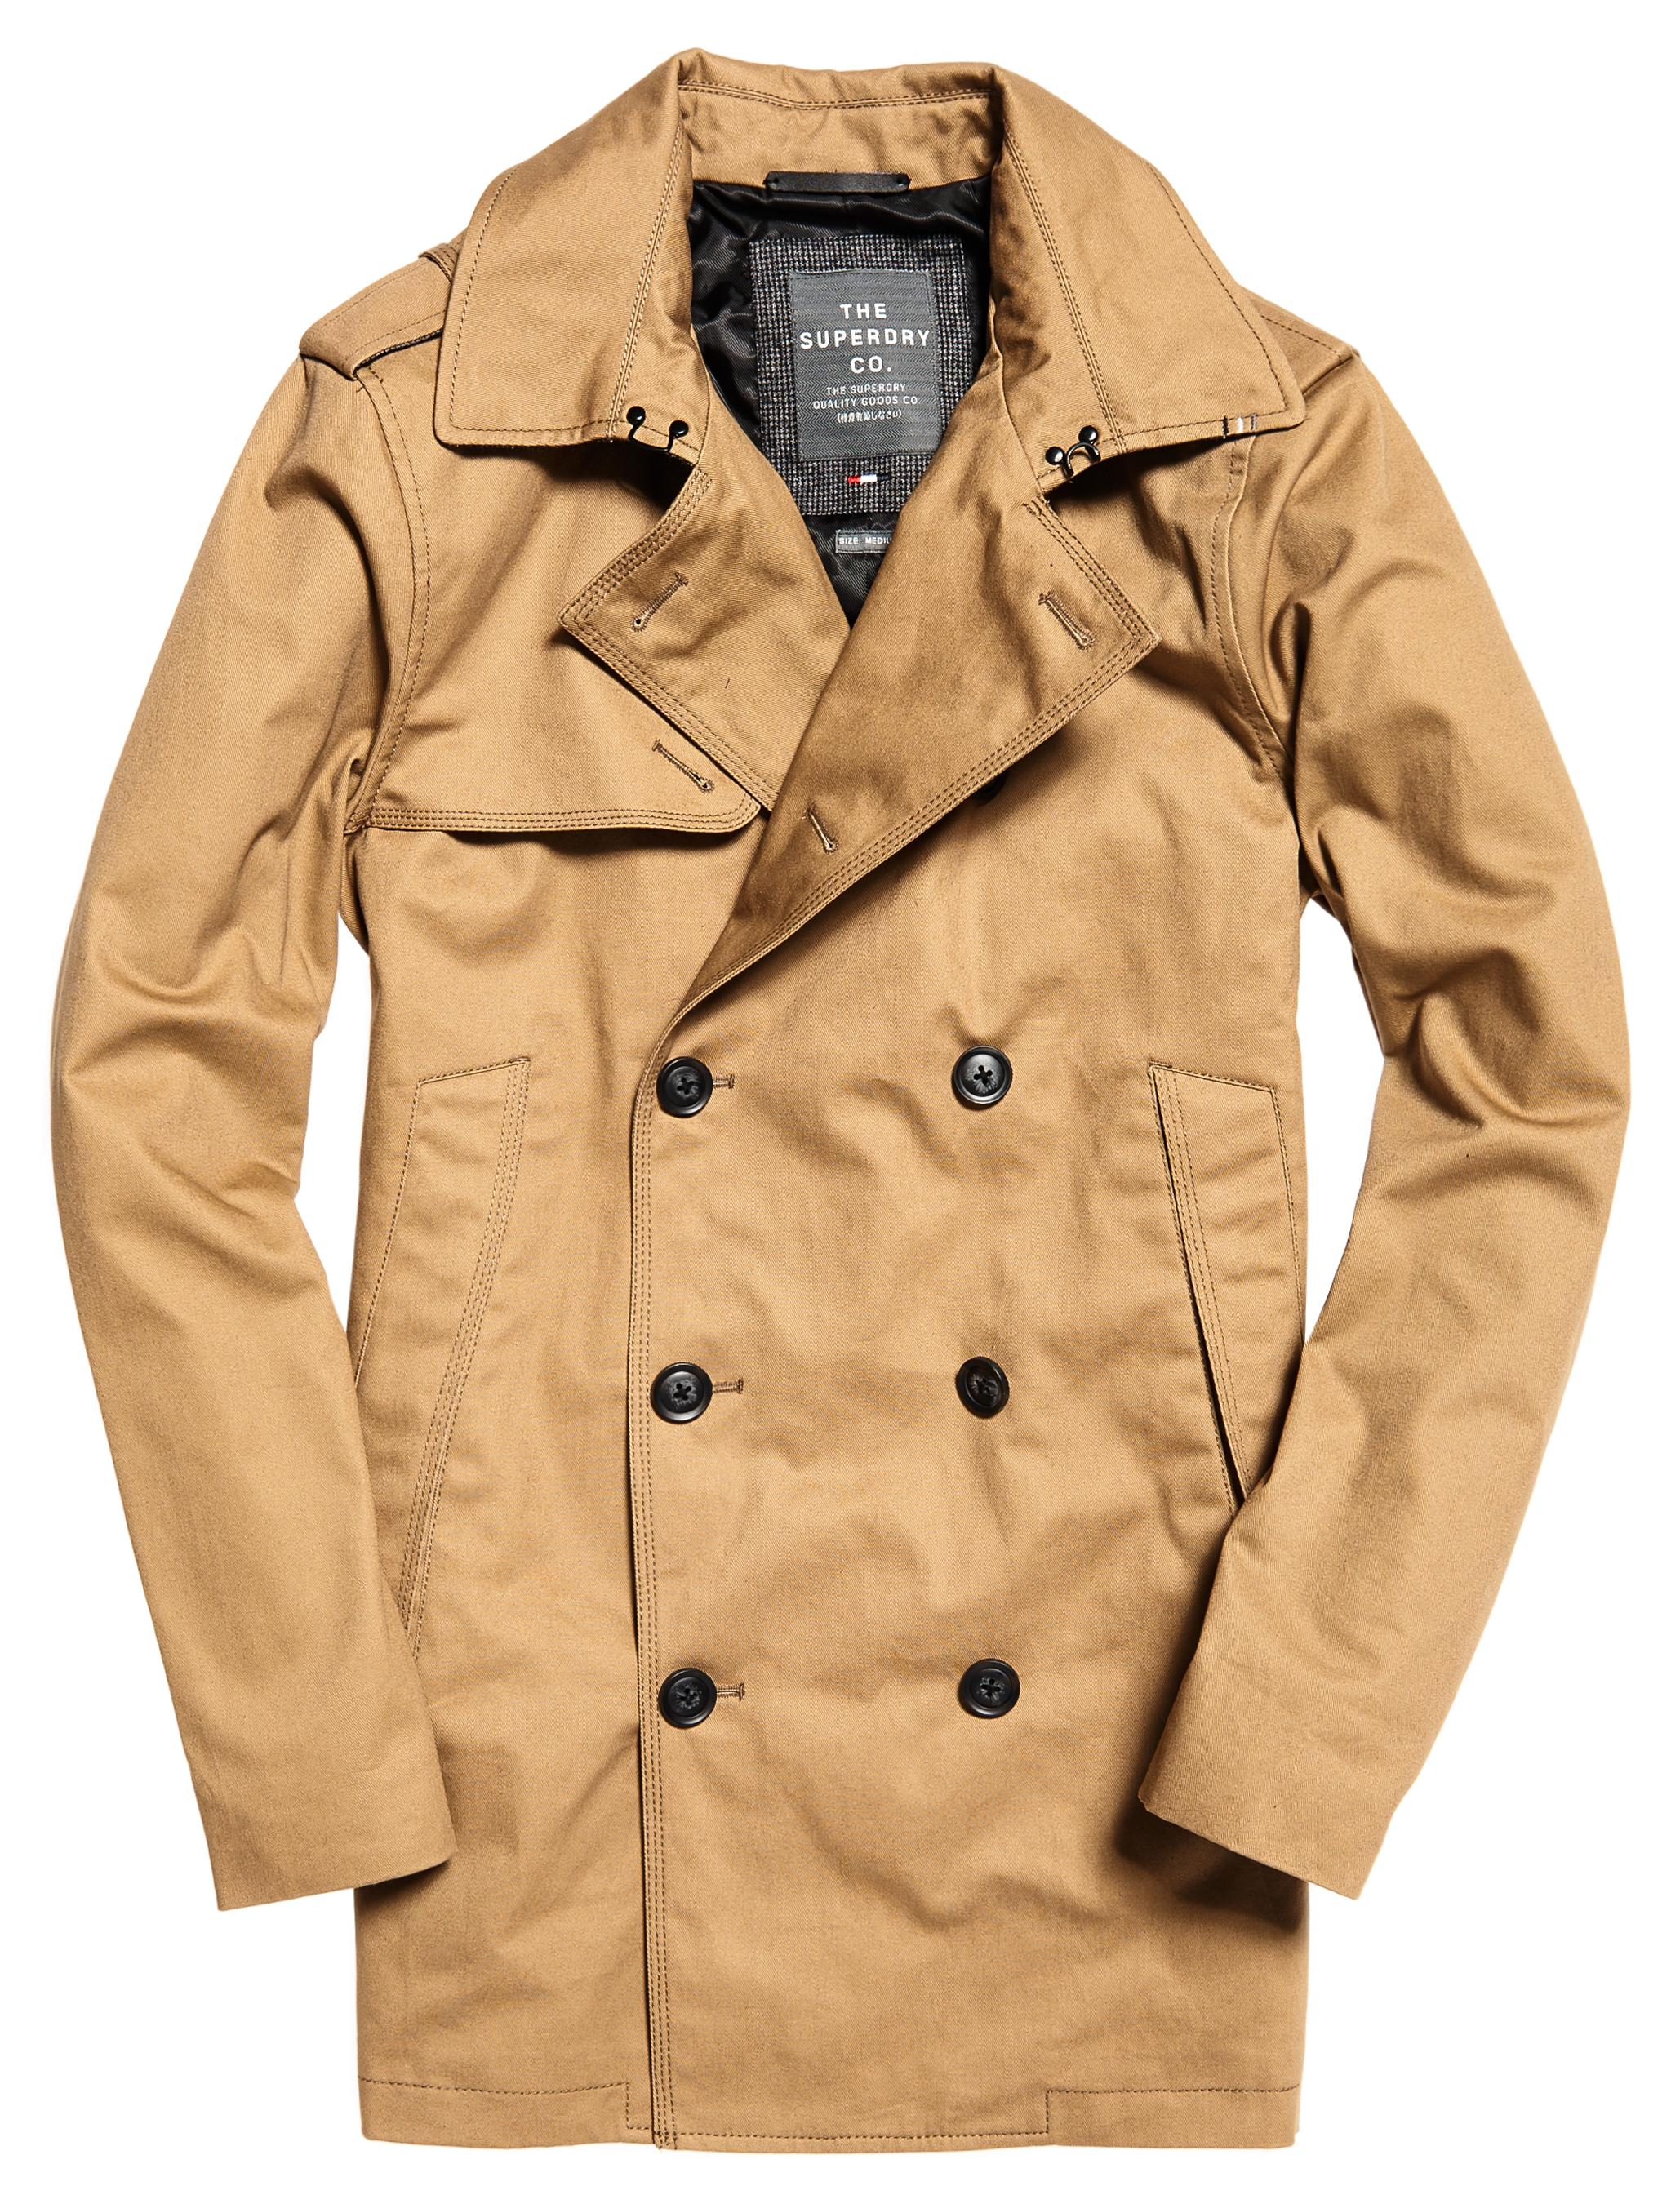 Superdry Remastered Rogue Trench Coat £124.99 www.superdry.com.jpg